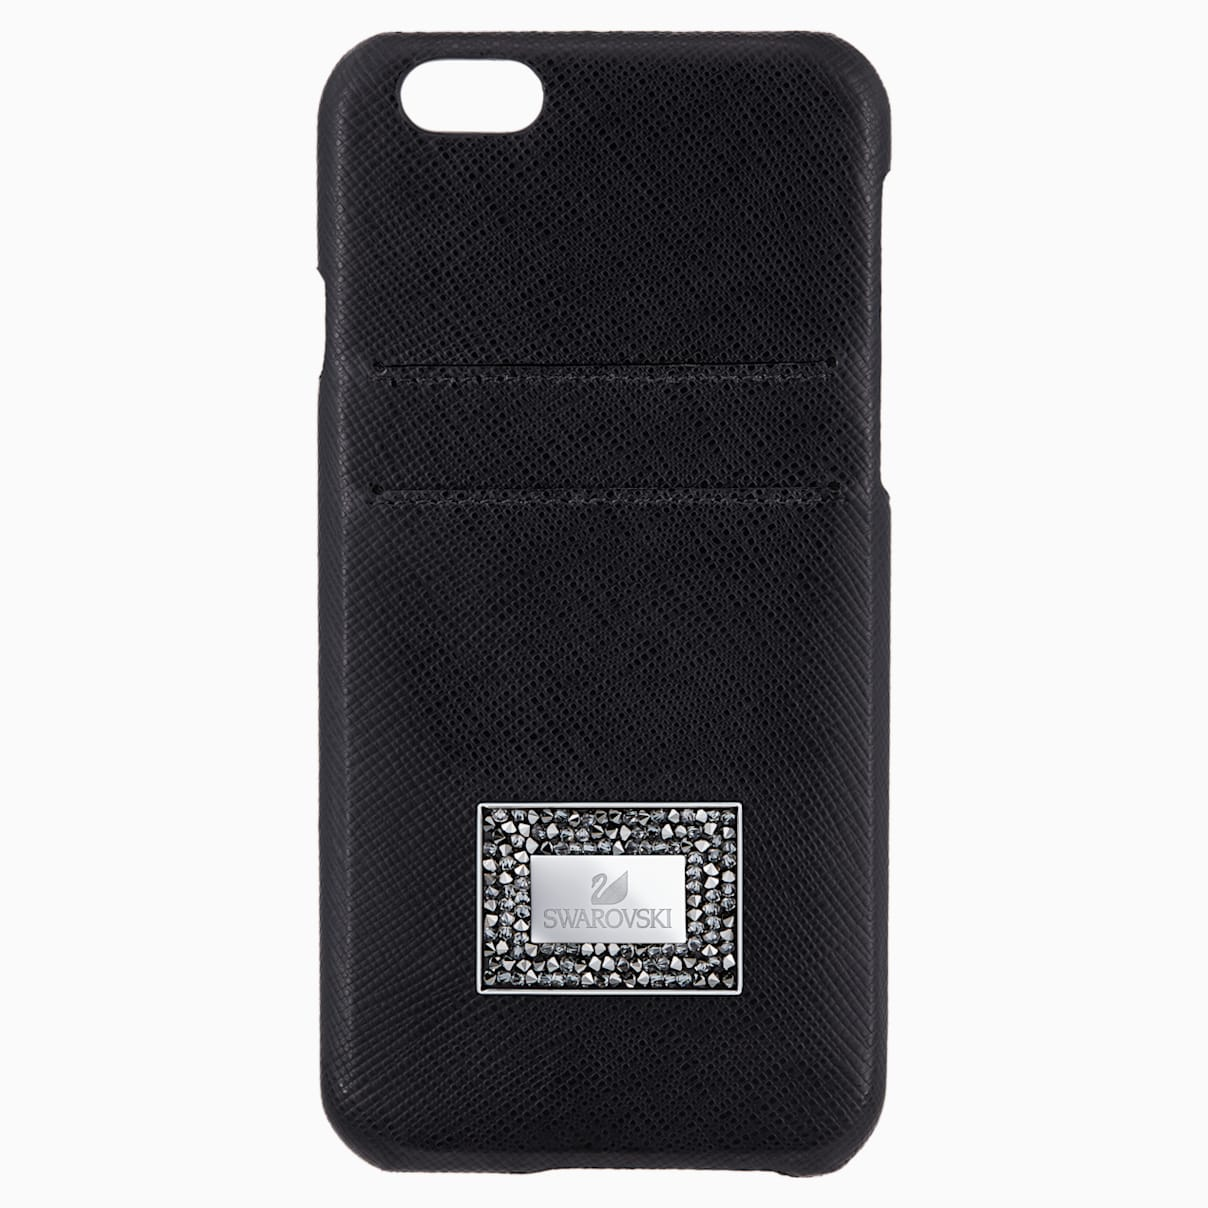 Custodia smartphone con bordi protettivi Versatile, iPhone® 6 Plus / 6s Plus, Nero